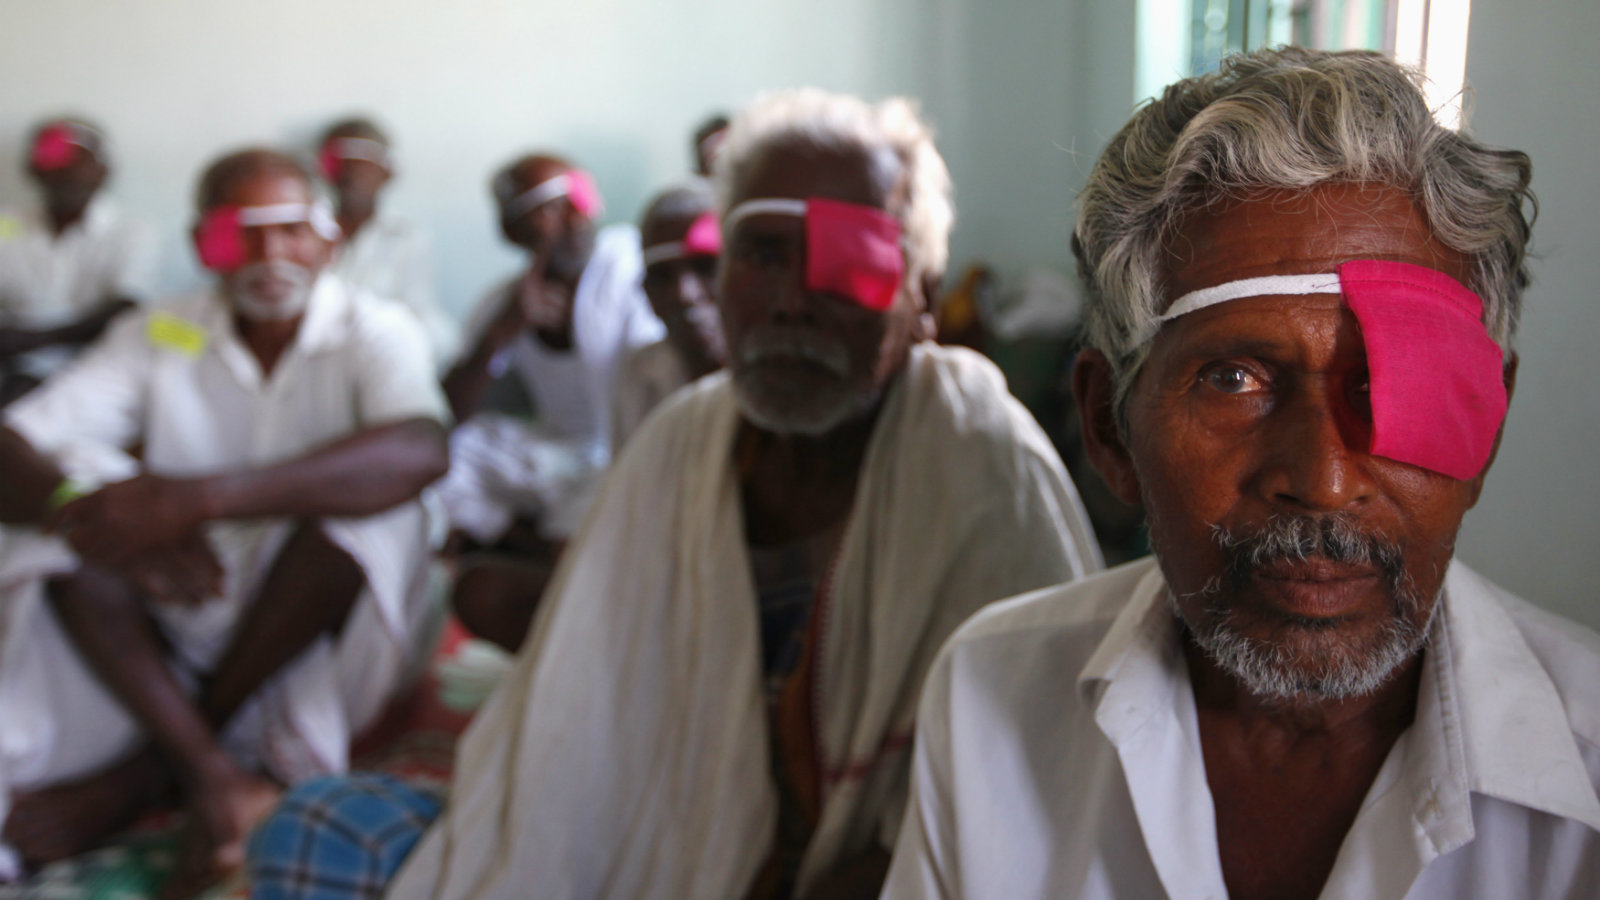 Patients with their eyes bandaged sit after their cataract surgeries at a hospital of the Aravind Eye Care System in Madurai, in India's Tamil Nadu state March 3, 2010. From a rented house with 11 beds in 1976, Aravind, whose mission is to eliminate needless blindness, has grown into a network of hospitals and clinics that provides eye examinations, surgery by keeping its costs extremely low and by subsidizing care for poor people through fees for paying customers and the sale of eye-care products. Picture taken March 3, 2010.